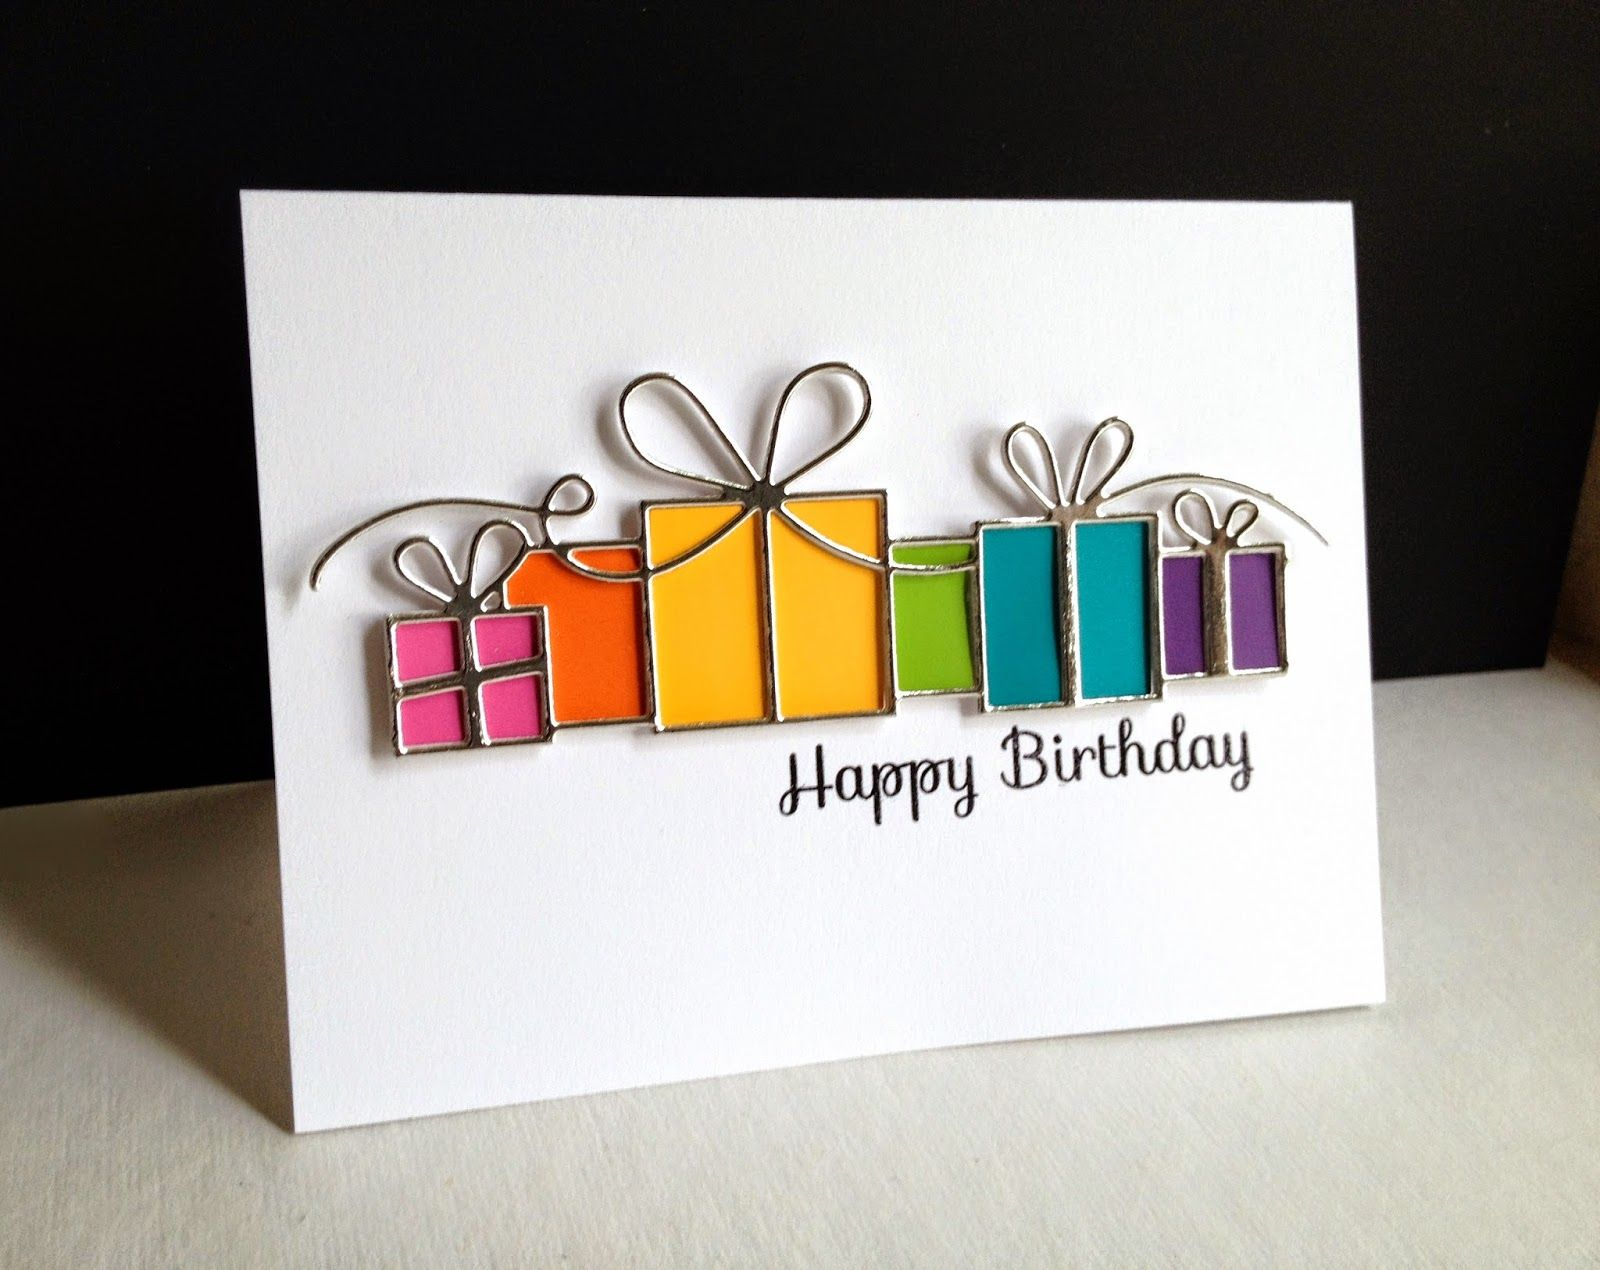 Birthday Greeting Card Making Ideas Part - 31: Pinterest